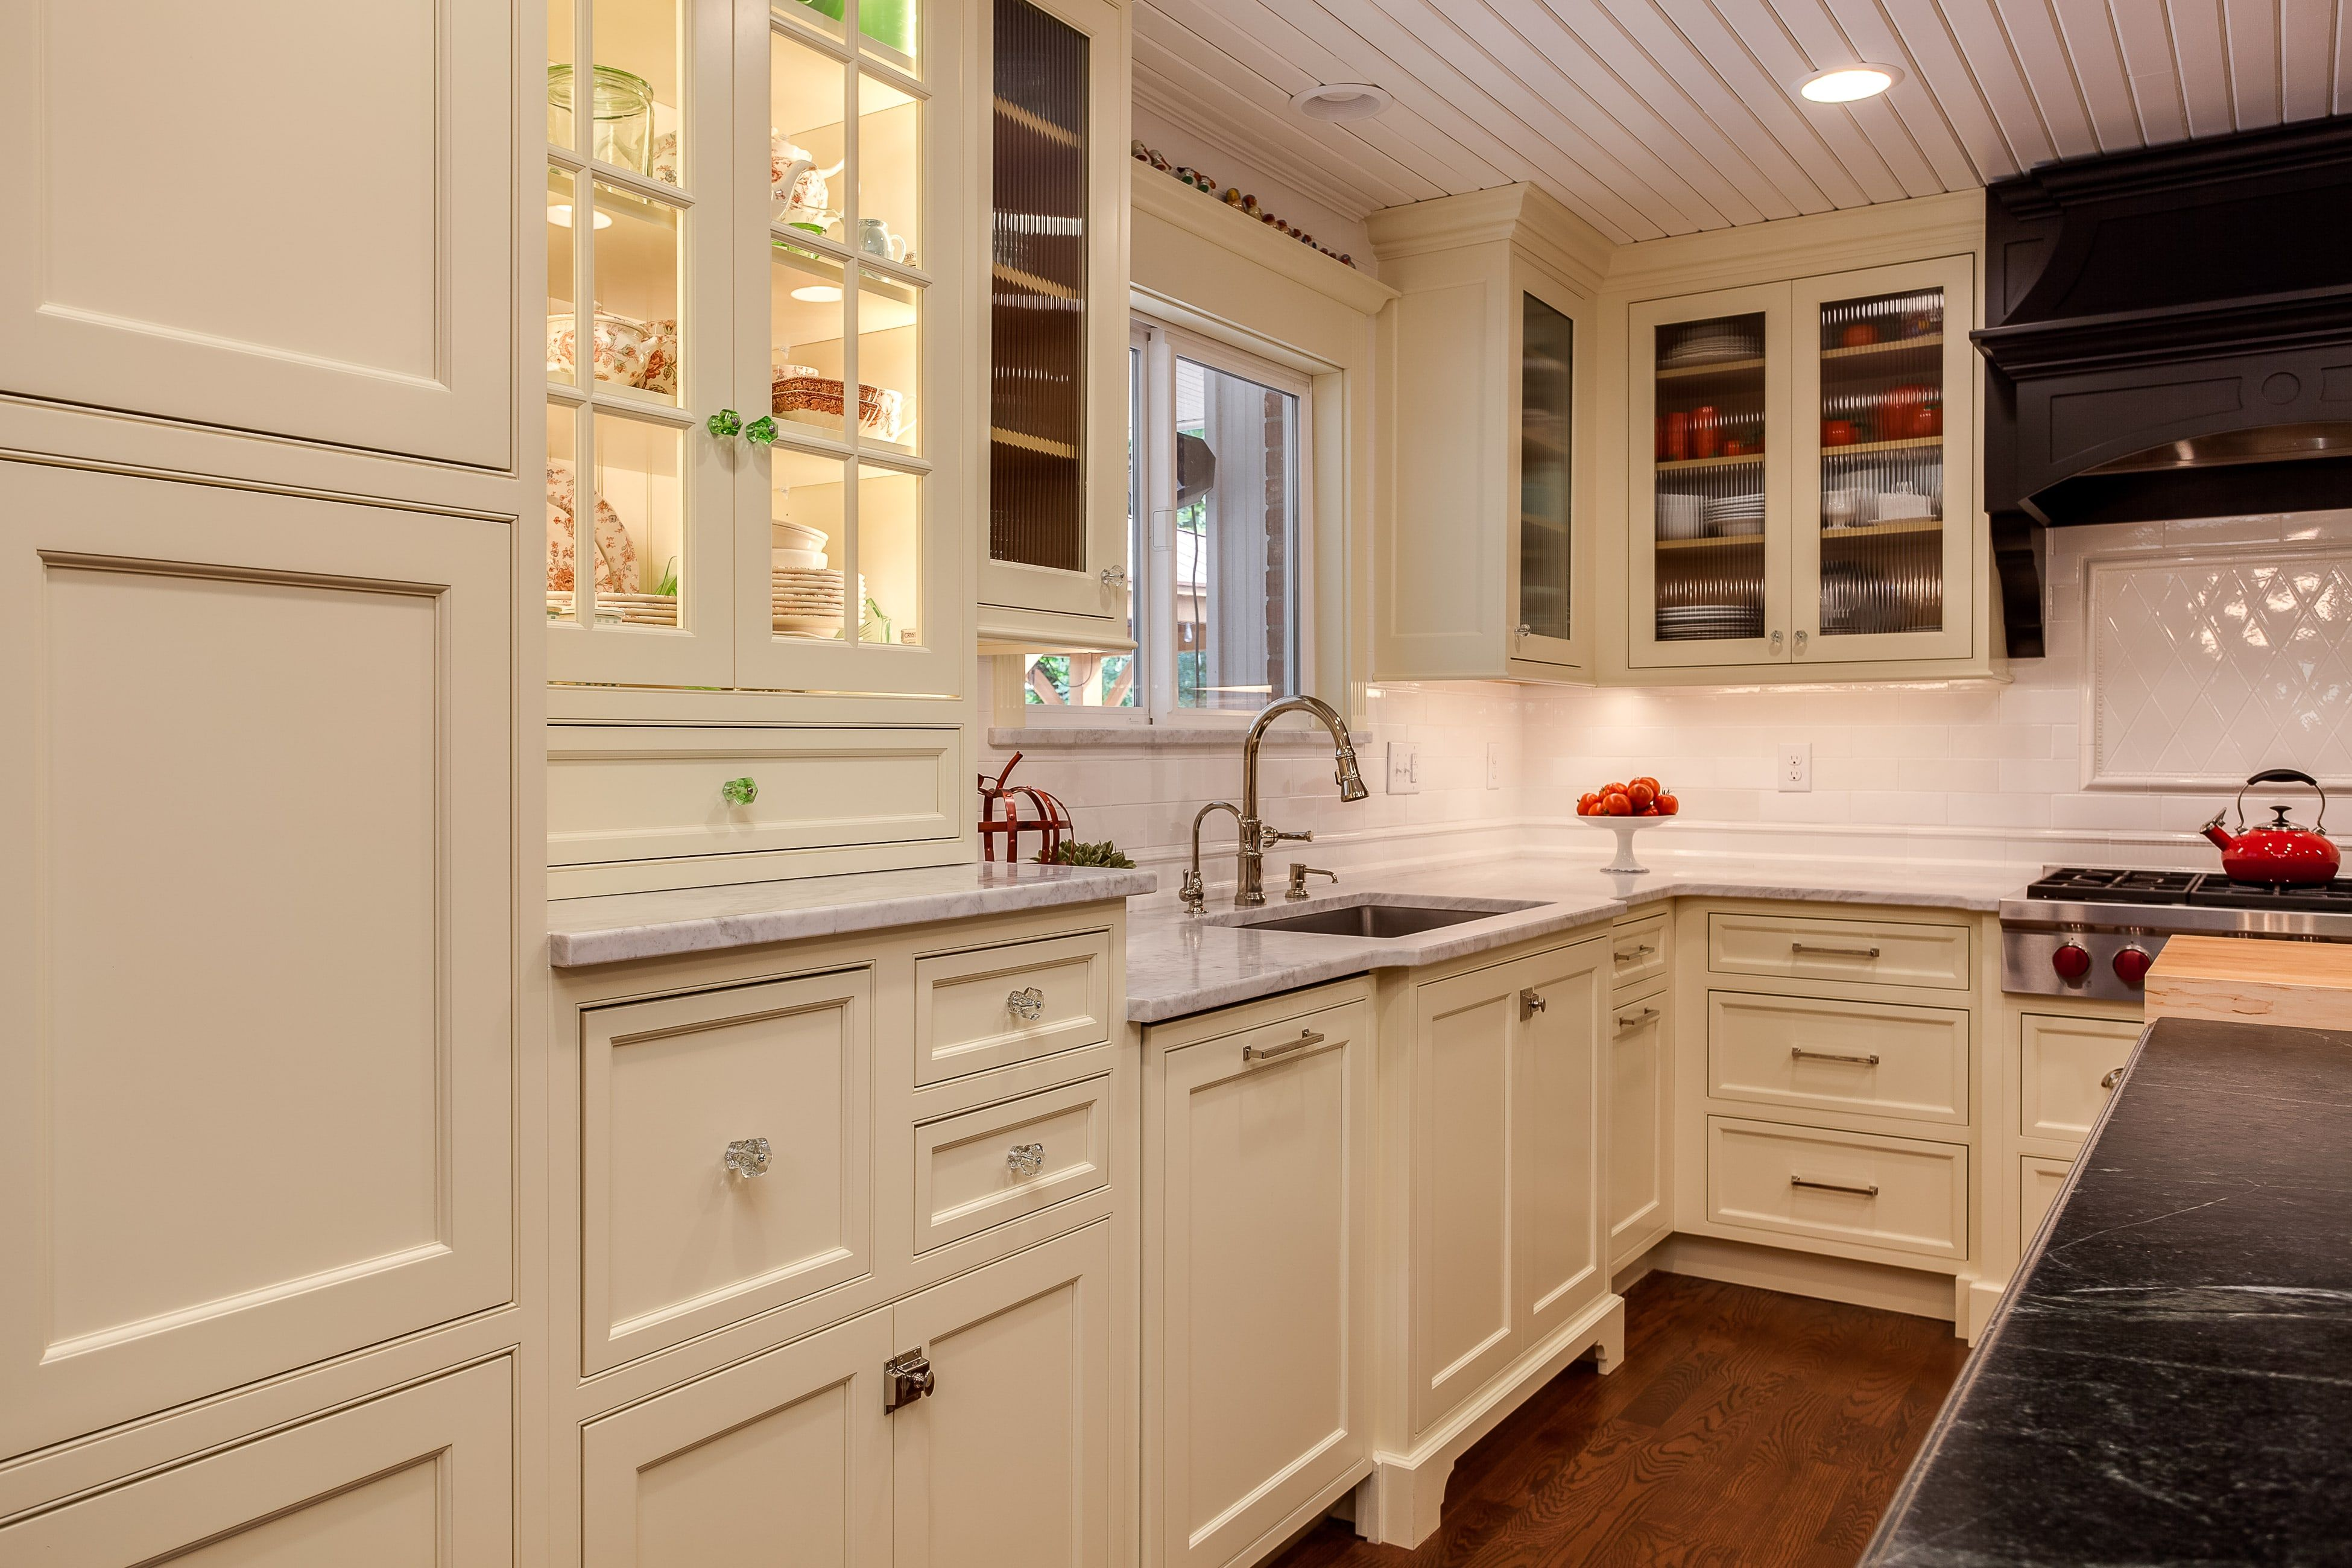 Off White Shaker Cabinets With Textured Glass Kitchen Kitchen